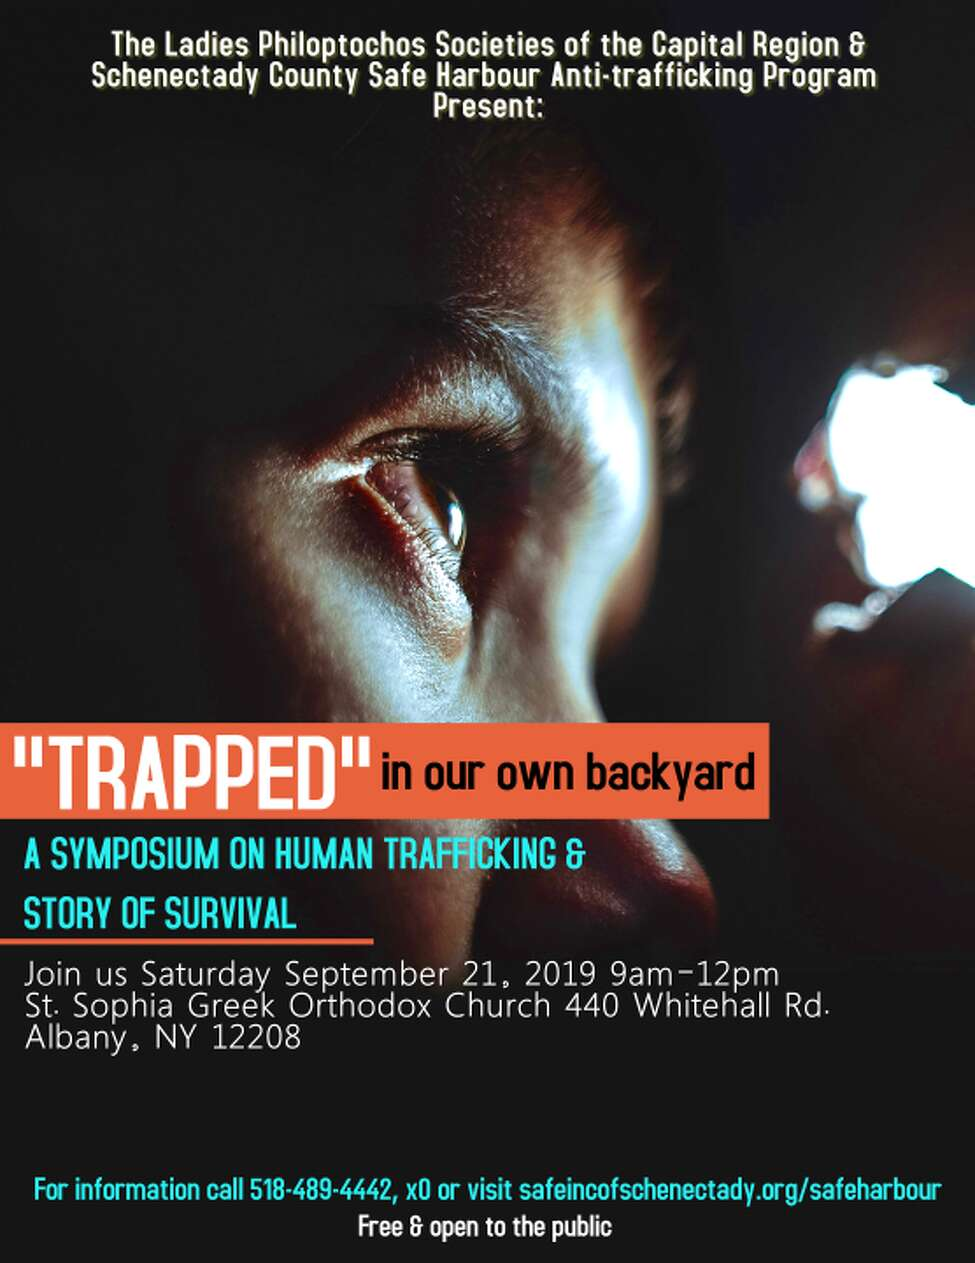 A symposium on human trafficking takes place in Albany on Saturday, Sept. 21, 2019.